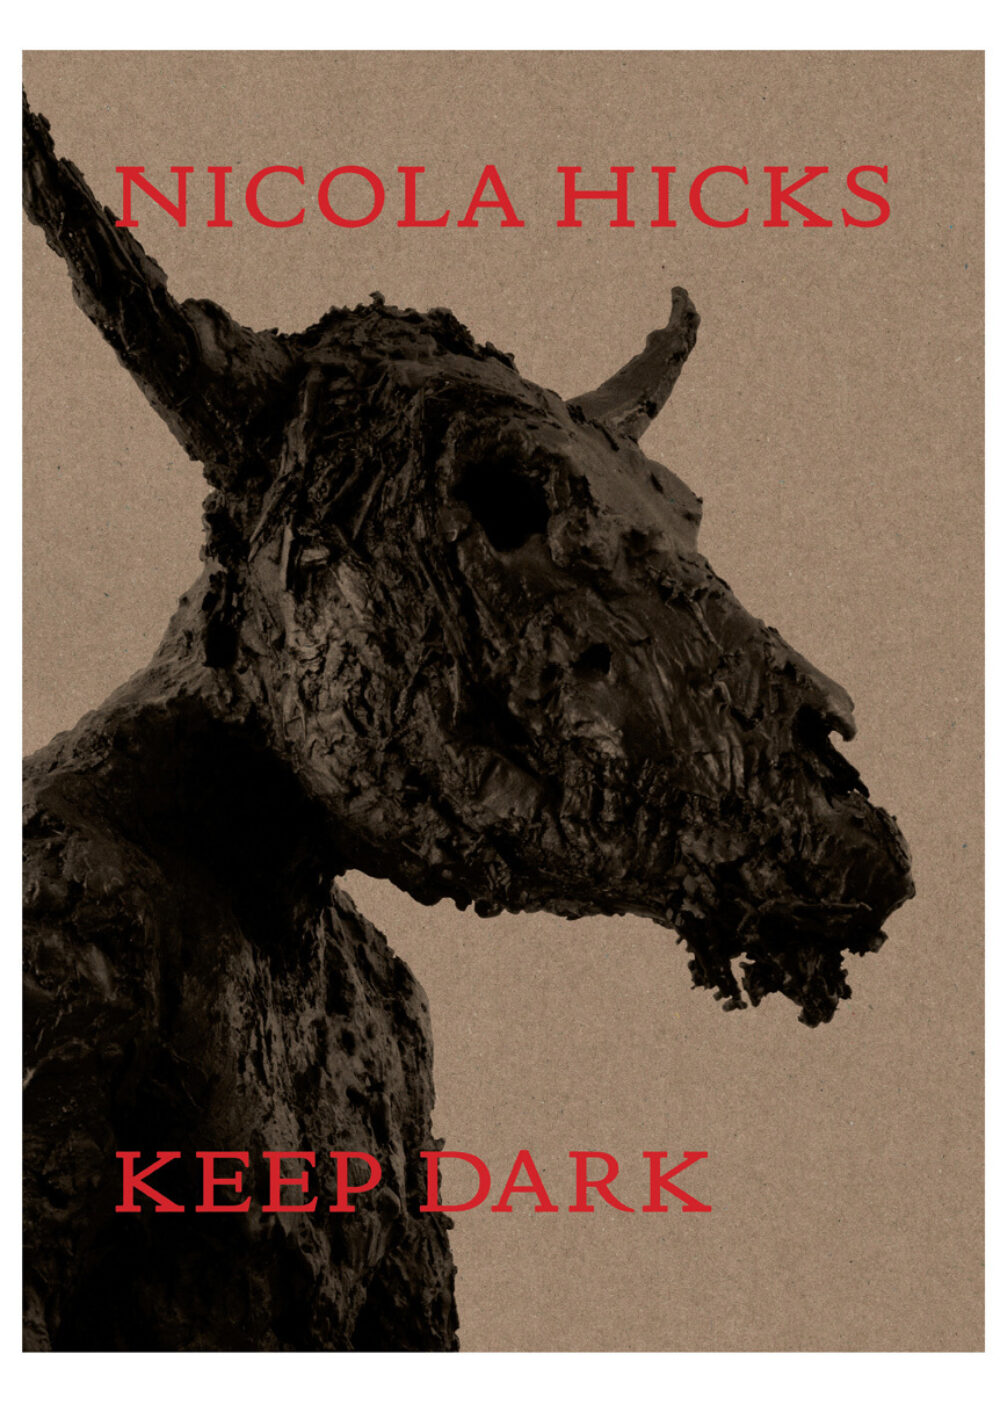 Elephant Magazine and Flowers Gallery | Book Launch for Nicola Hicks - Keep Dark